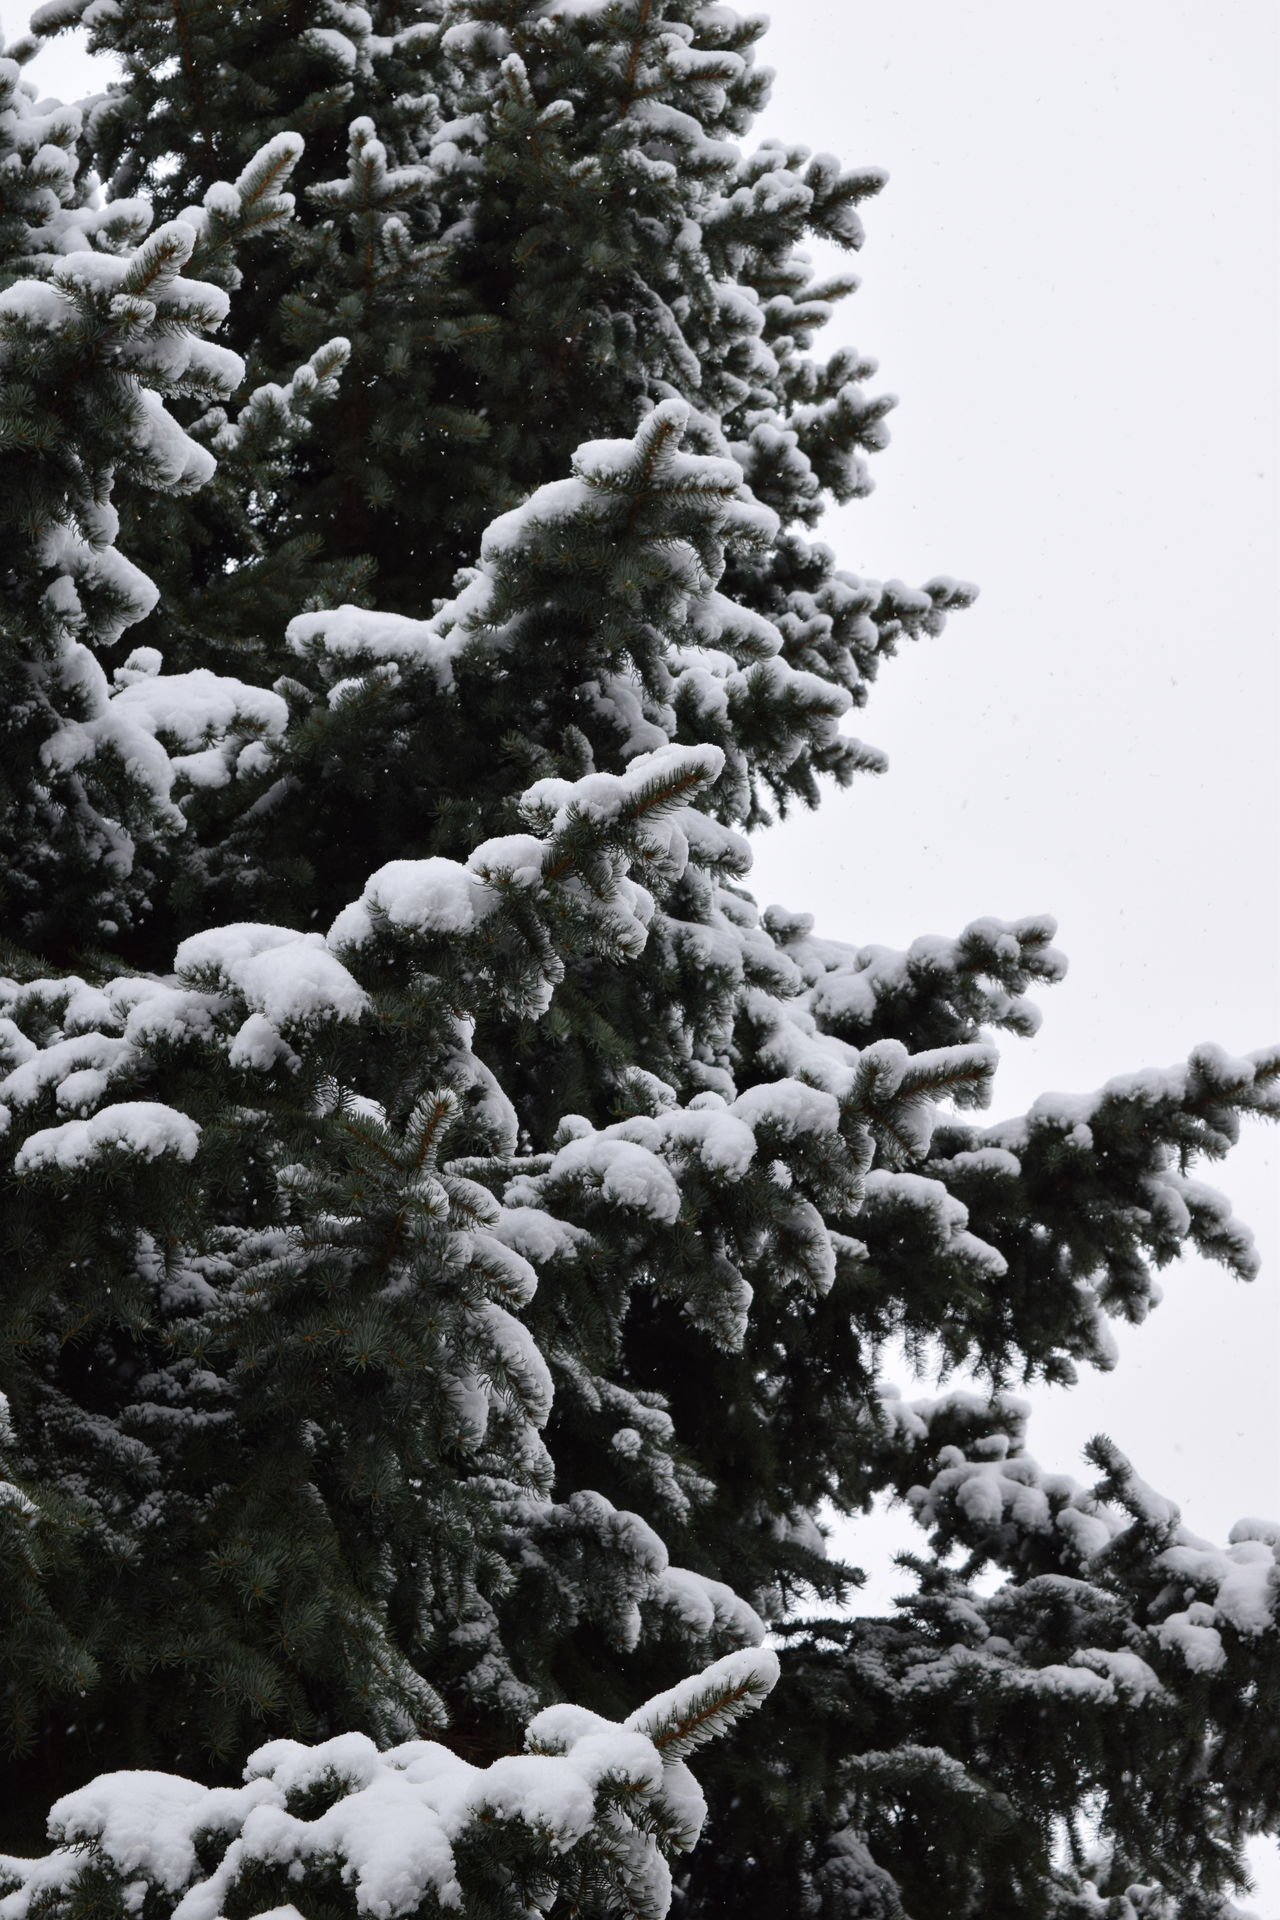 Backgrounds Beauty In Nature Branch Close-up Cold Temperature Day Evergreen Growth Low Angle View Nature No People Outdoors Scenics Sky Snow Tranquility Tree Winter